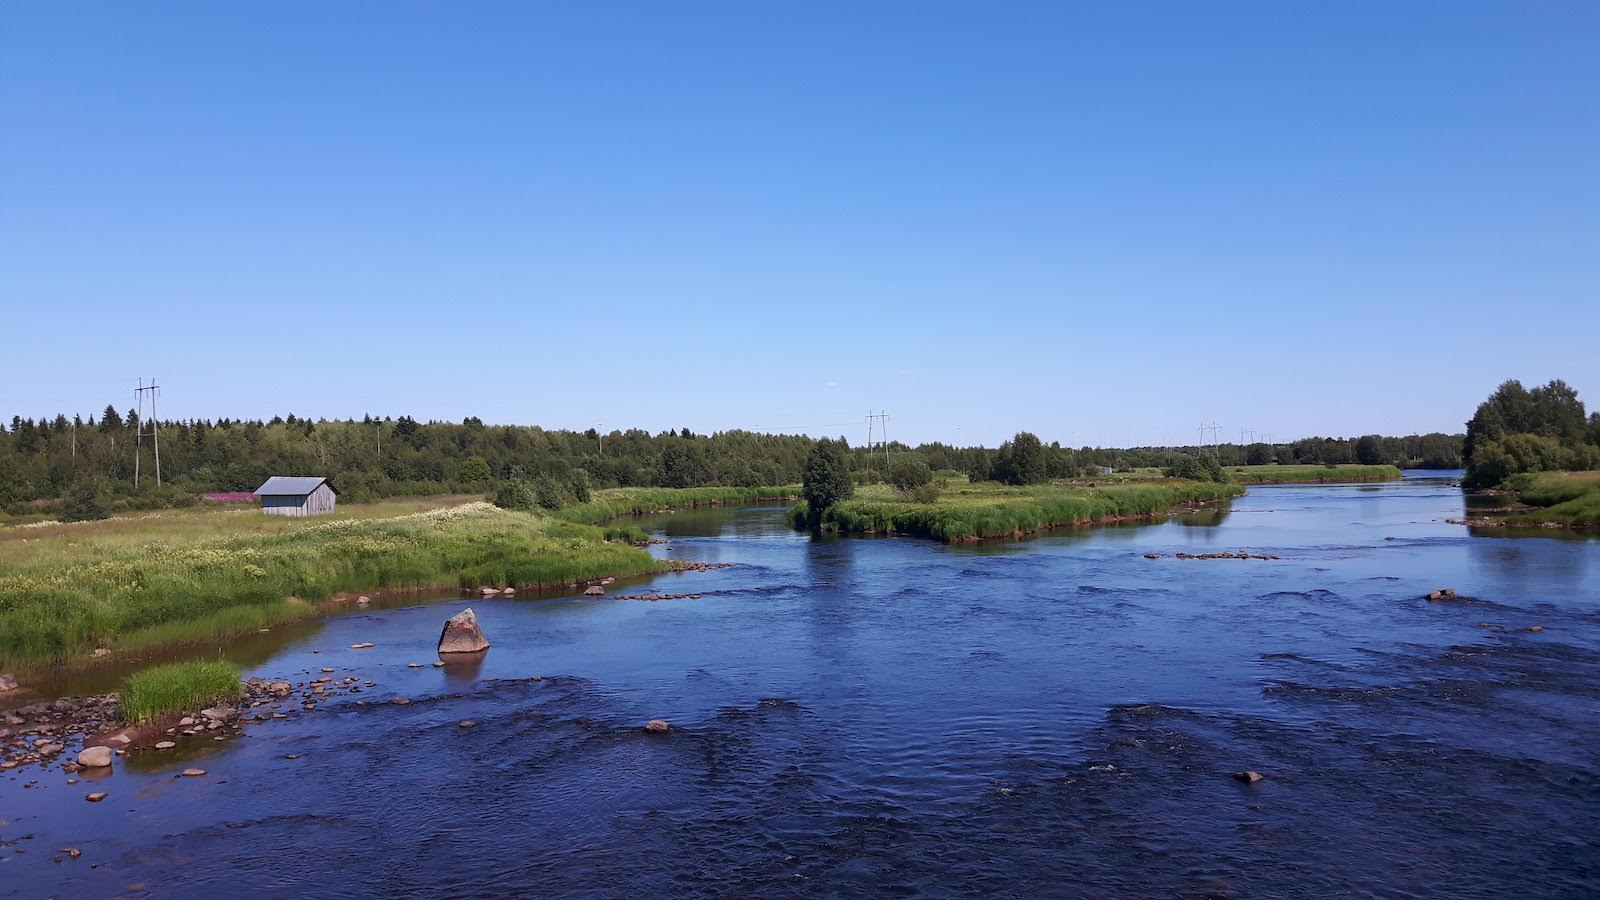 A stream on the way to Kemi Finland